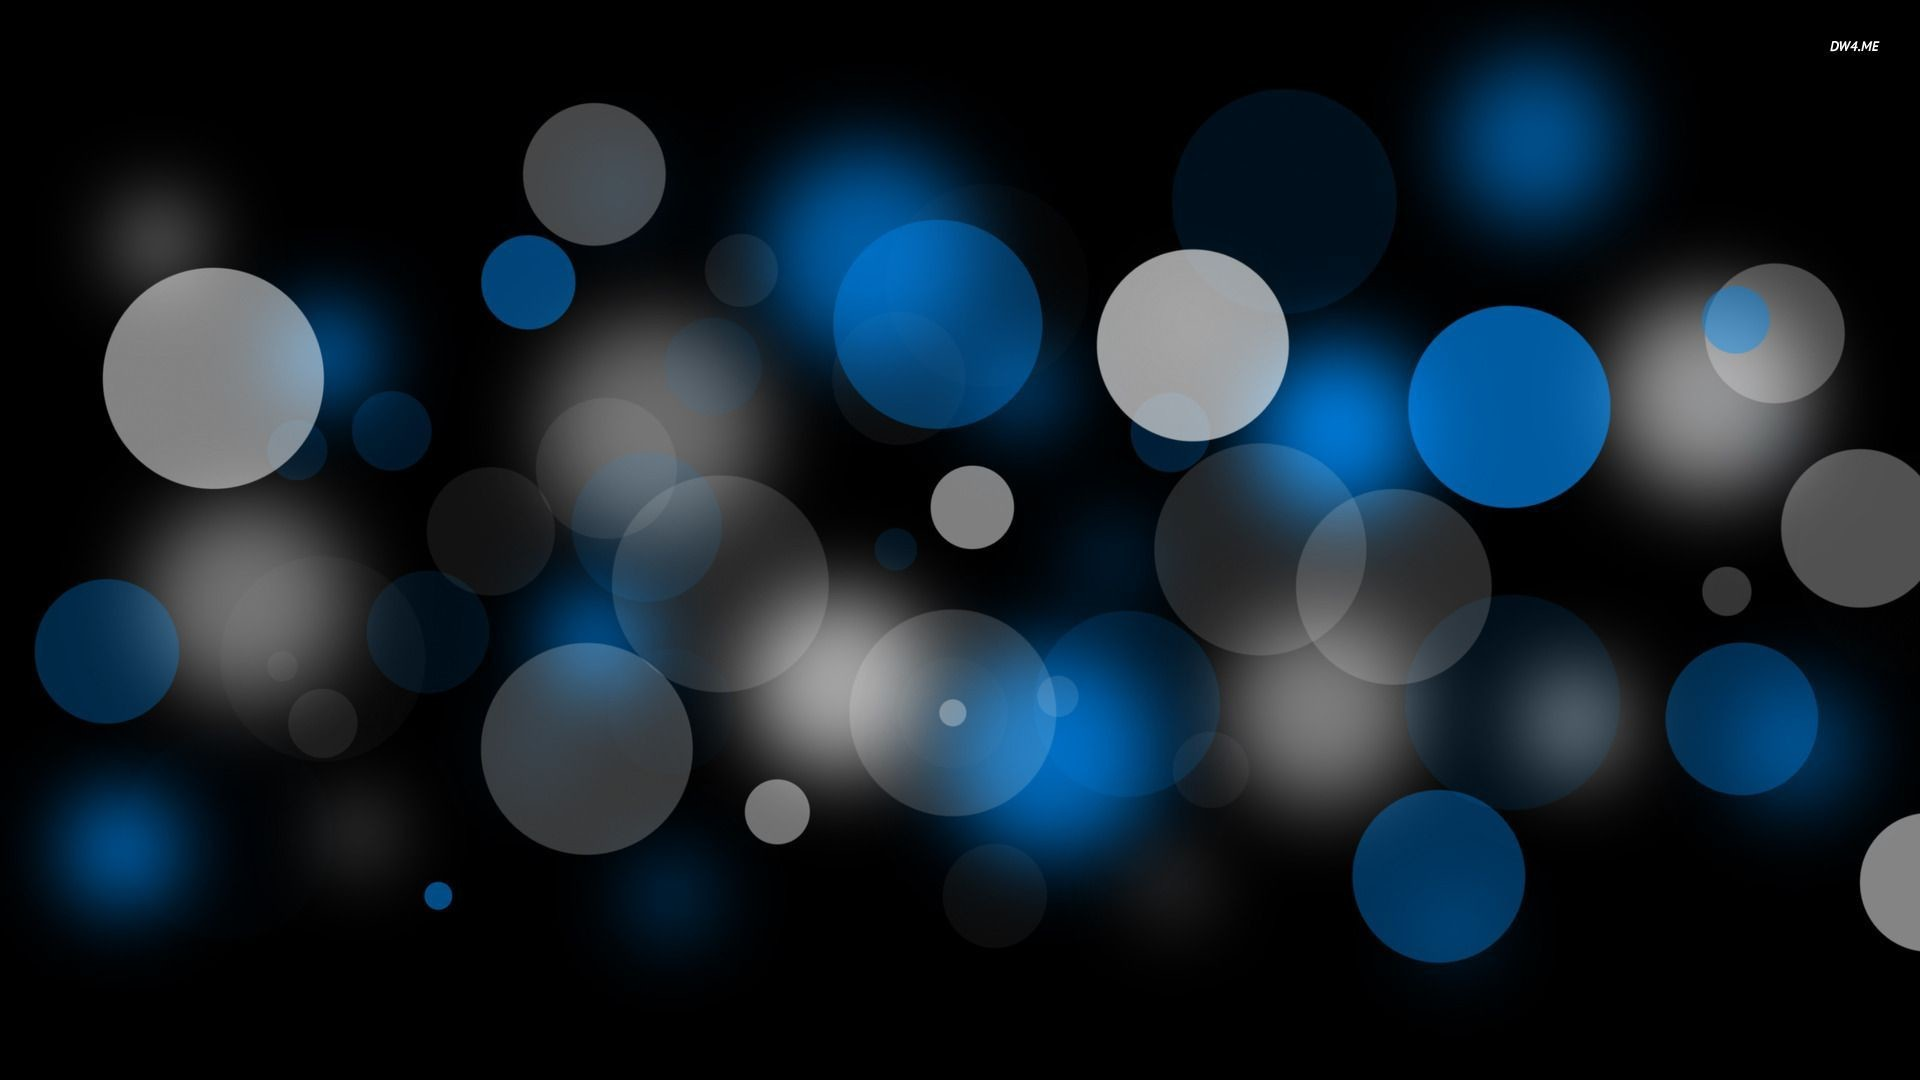 Blue and white bubbles wallpaper – Abstract wallpapers – #805